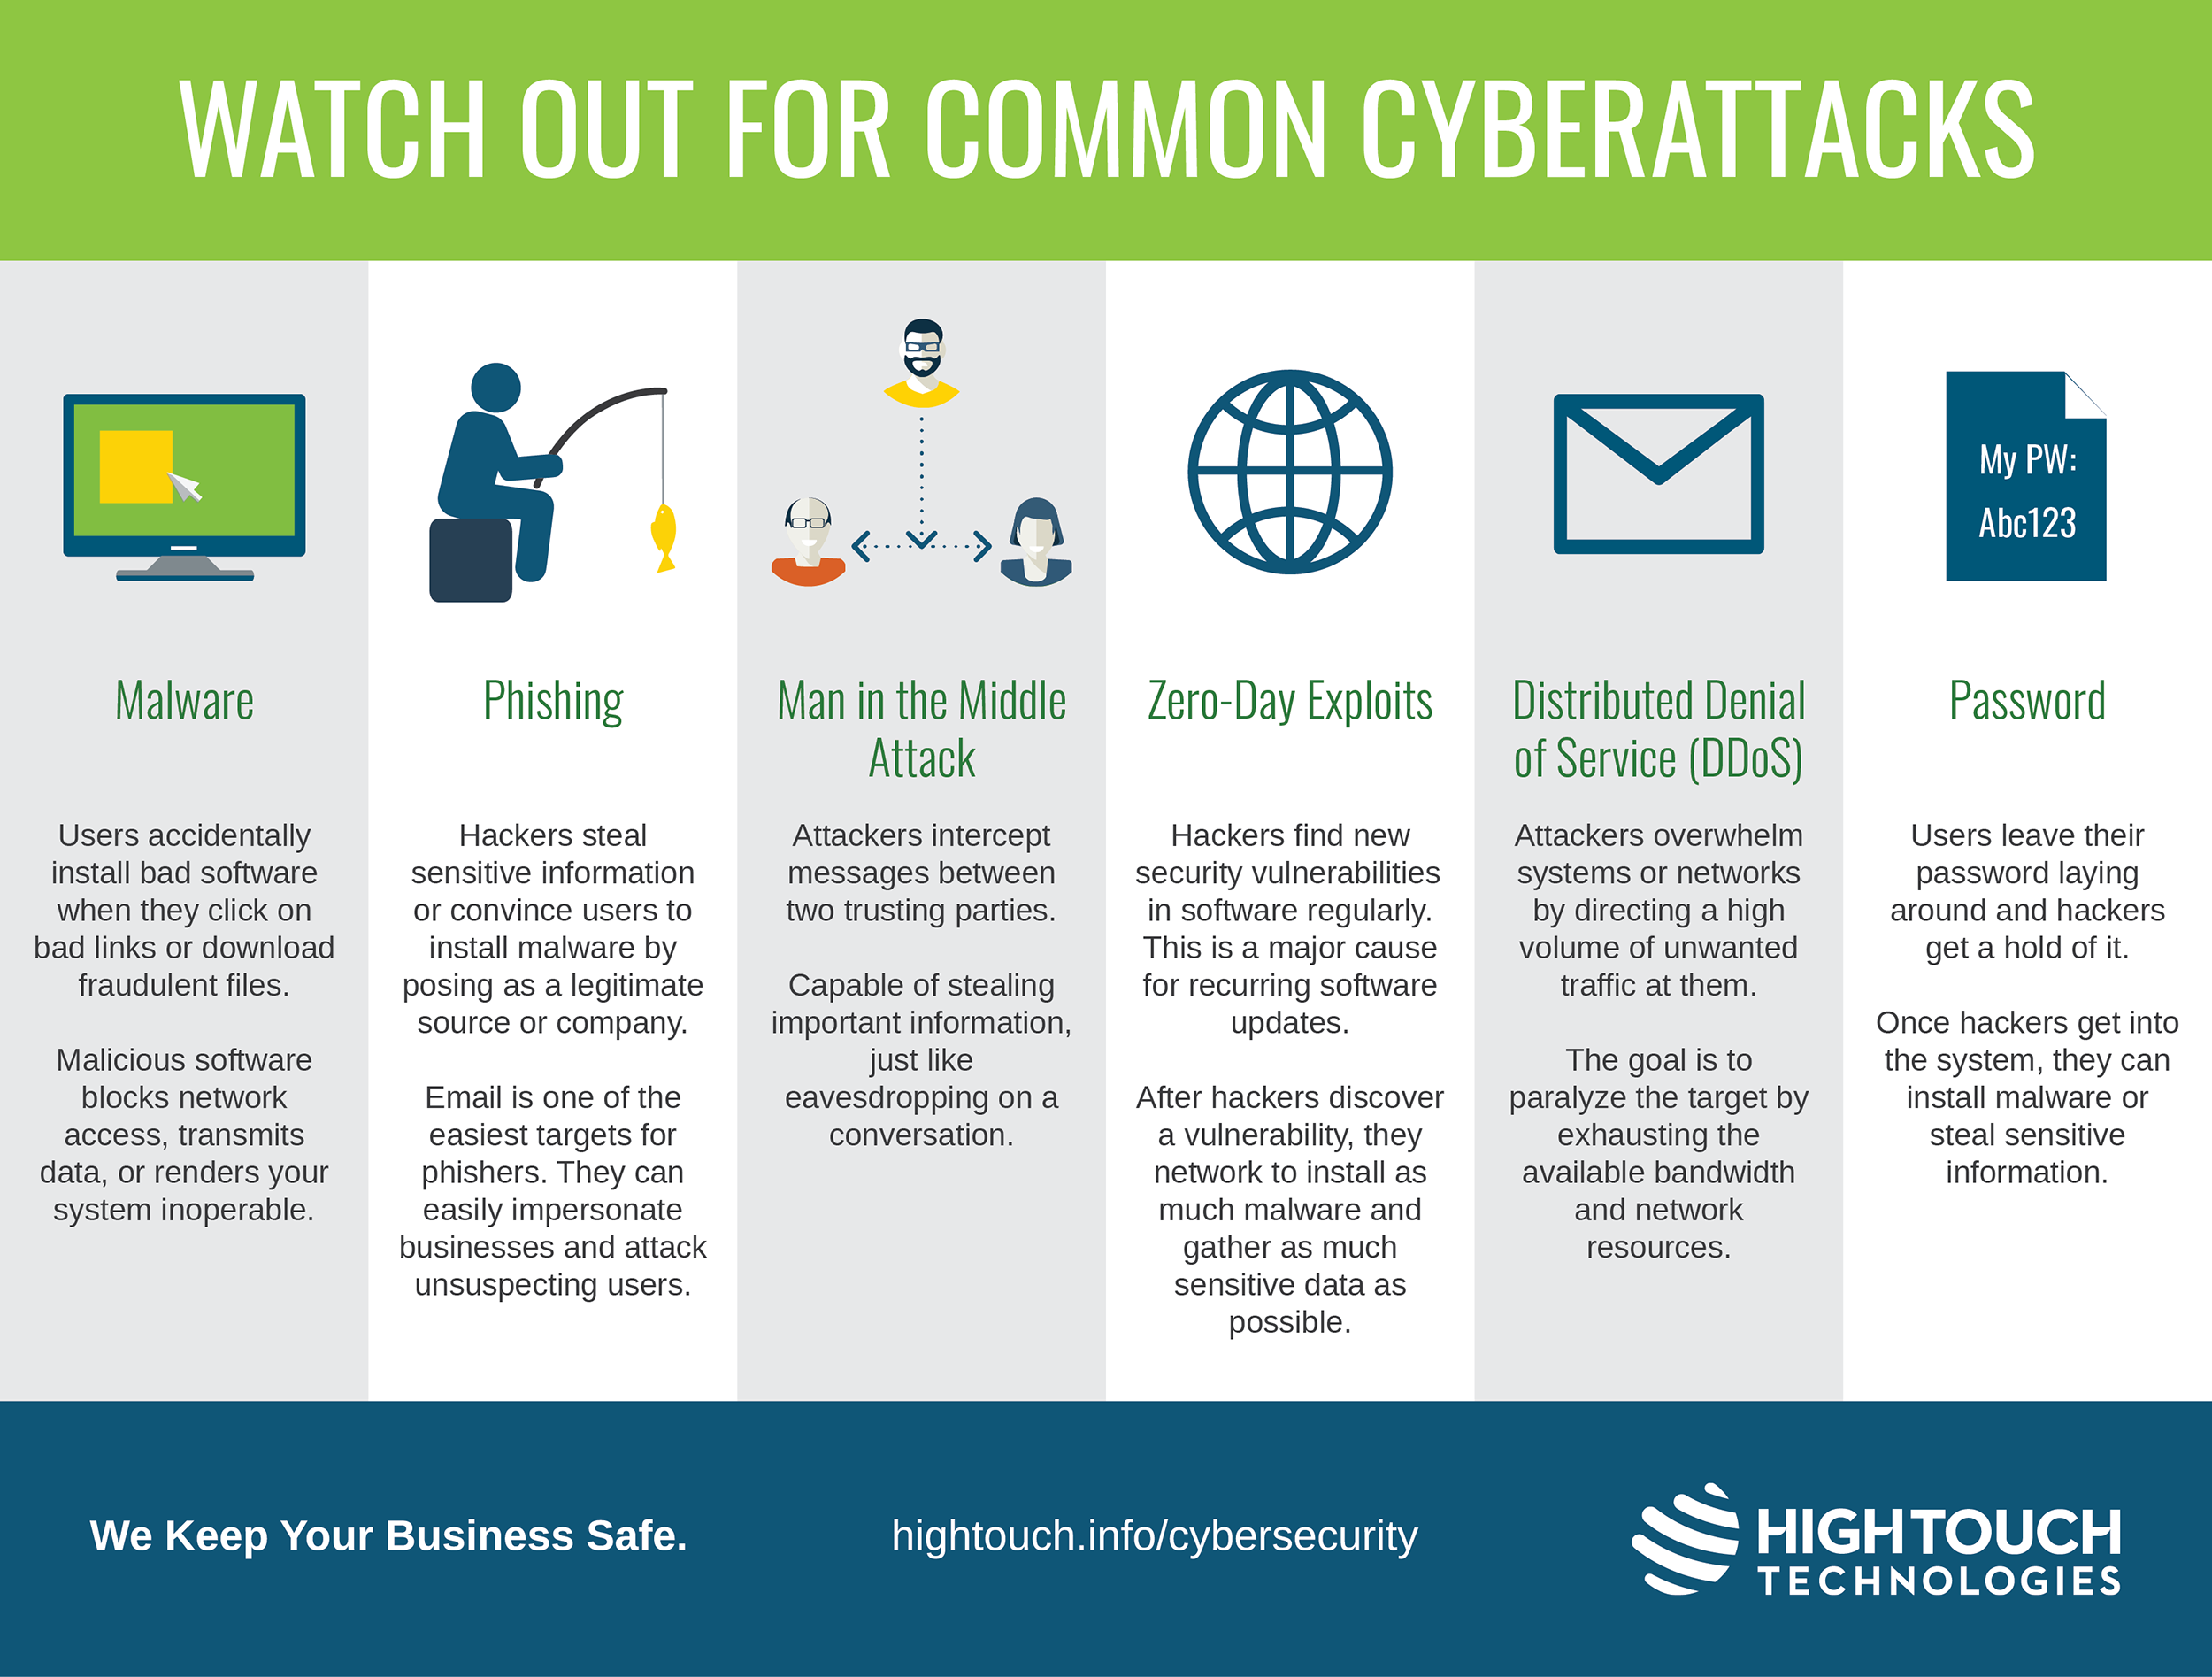 Common Cyberattacks infographic